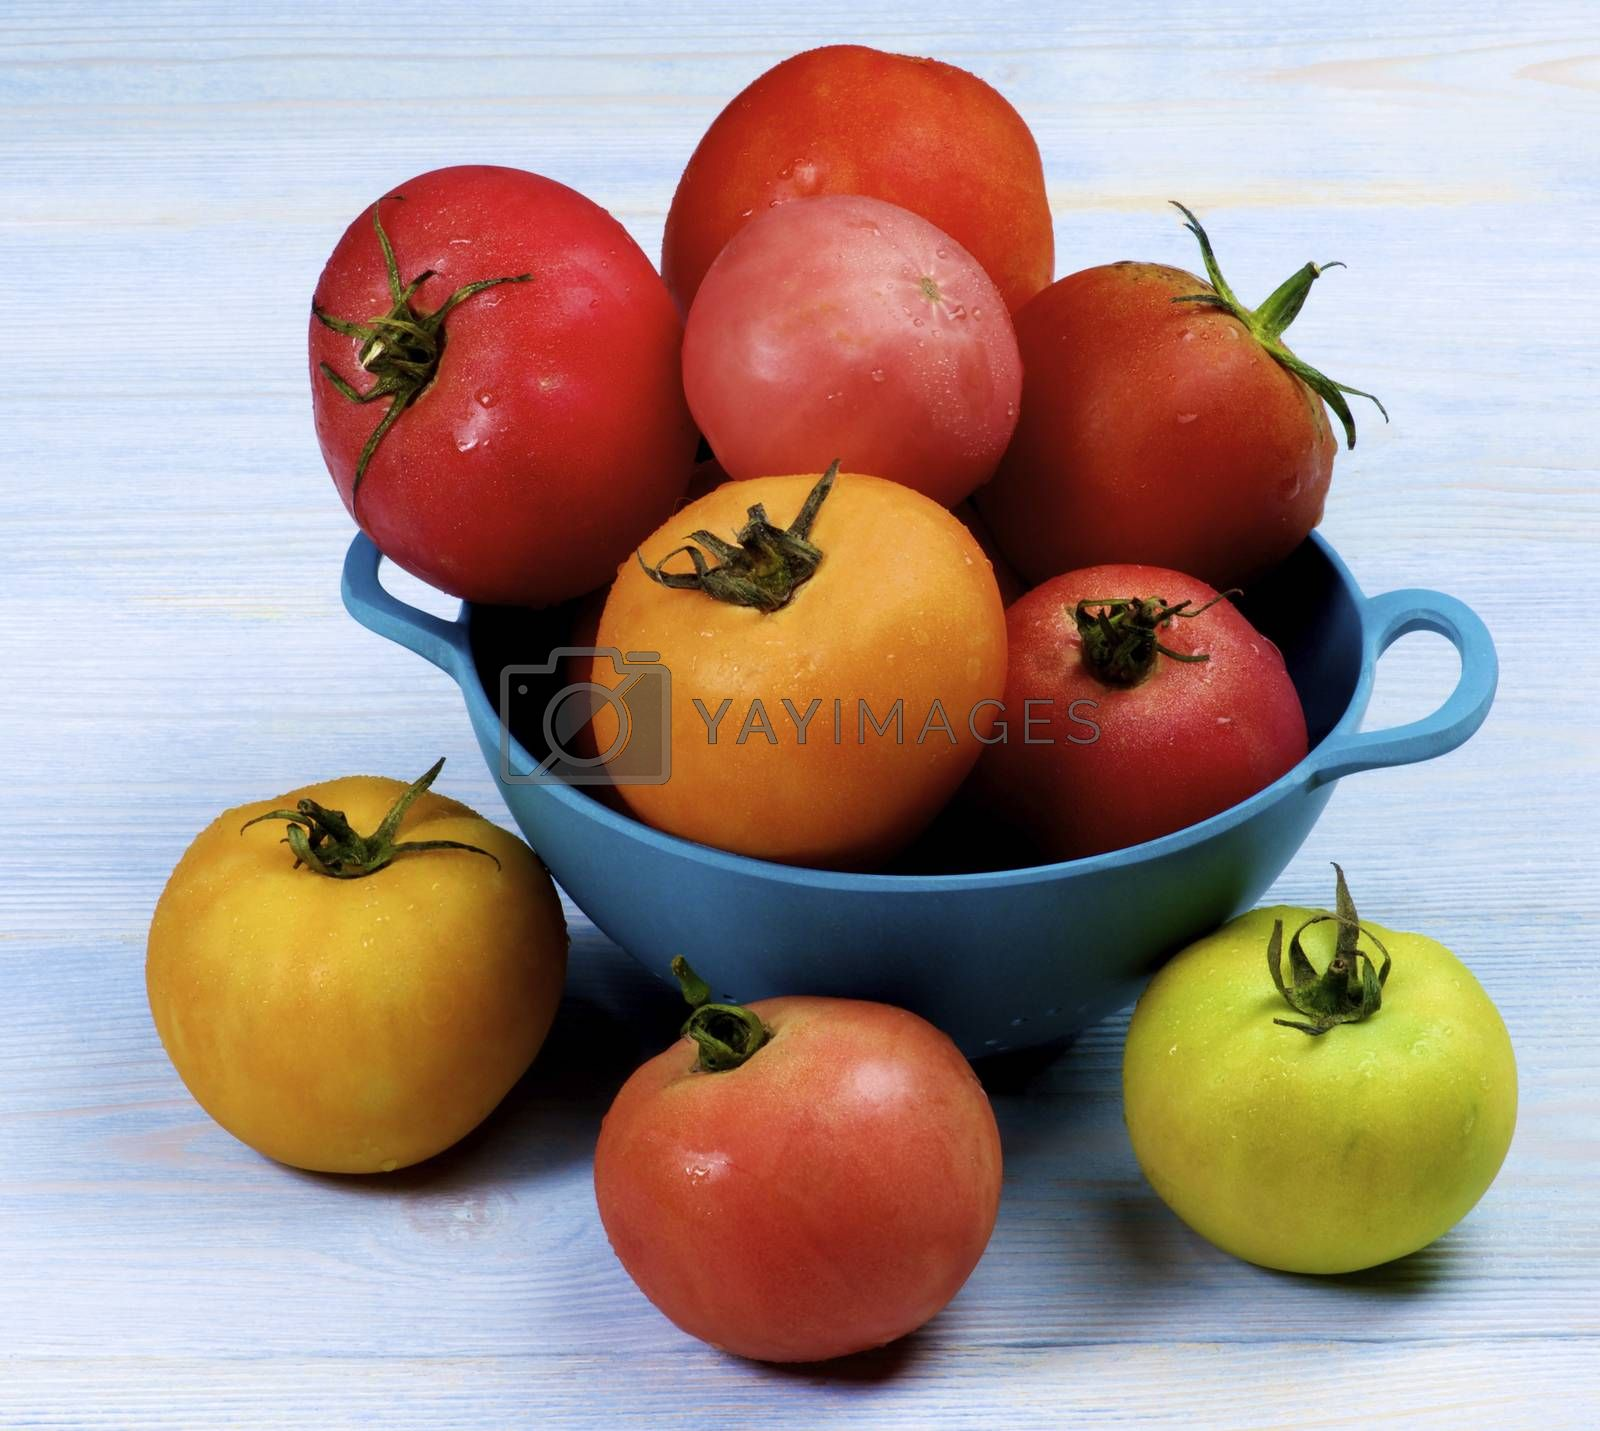 Colorful Fresh Tomatoes with Water Drops in Blue Colander closeup on Wooden background